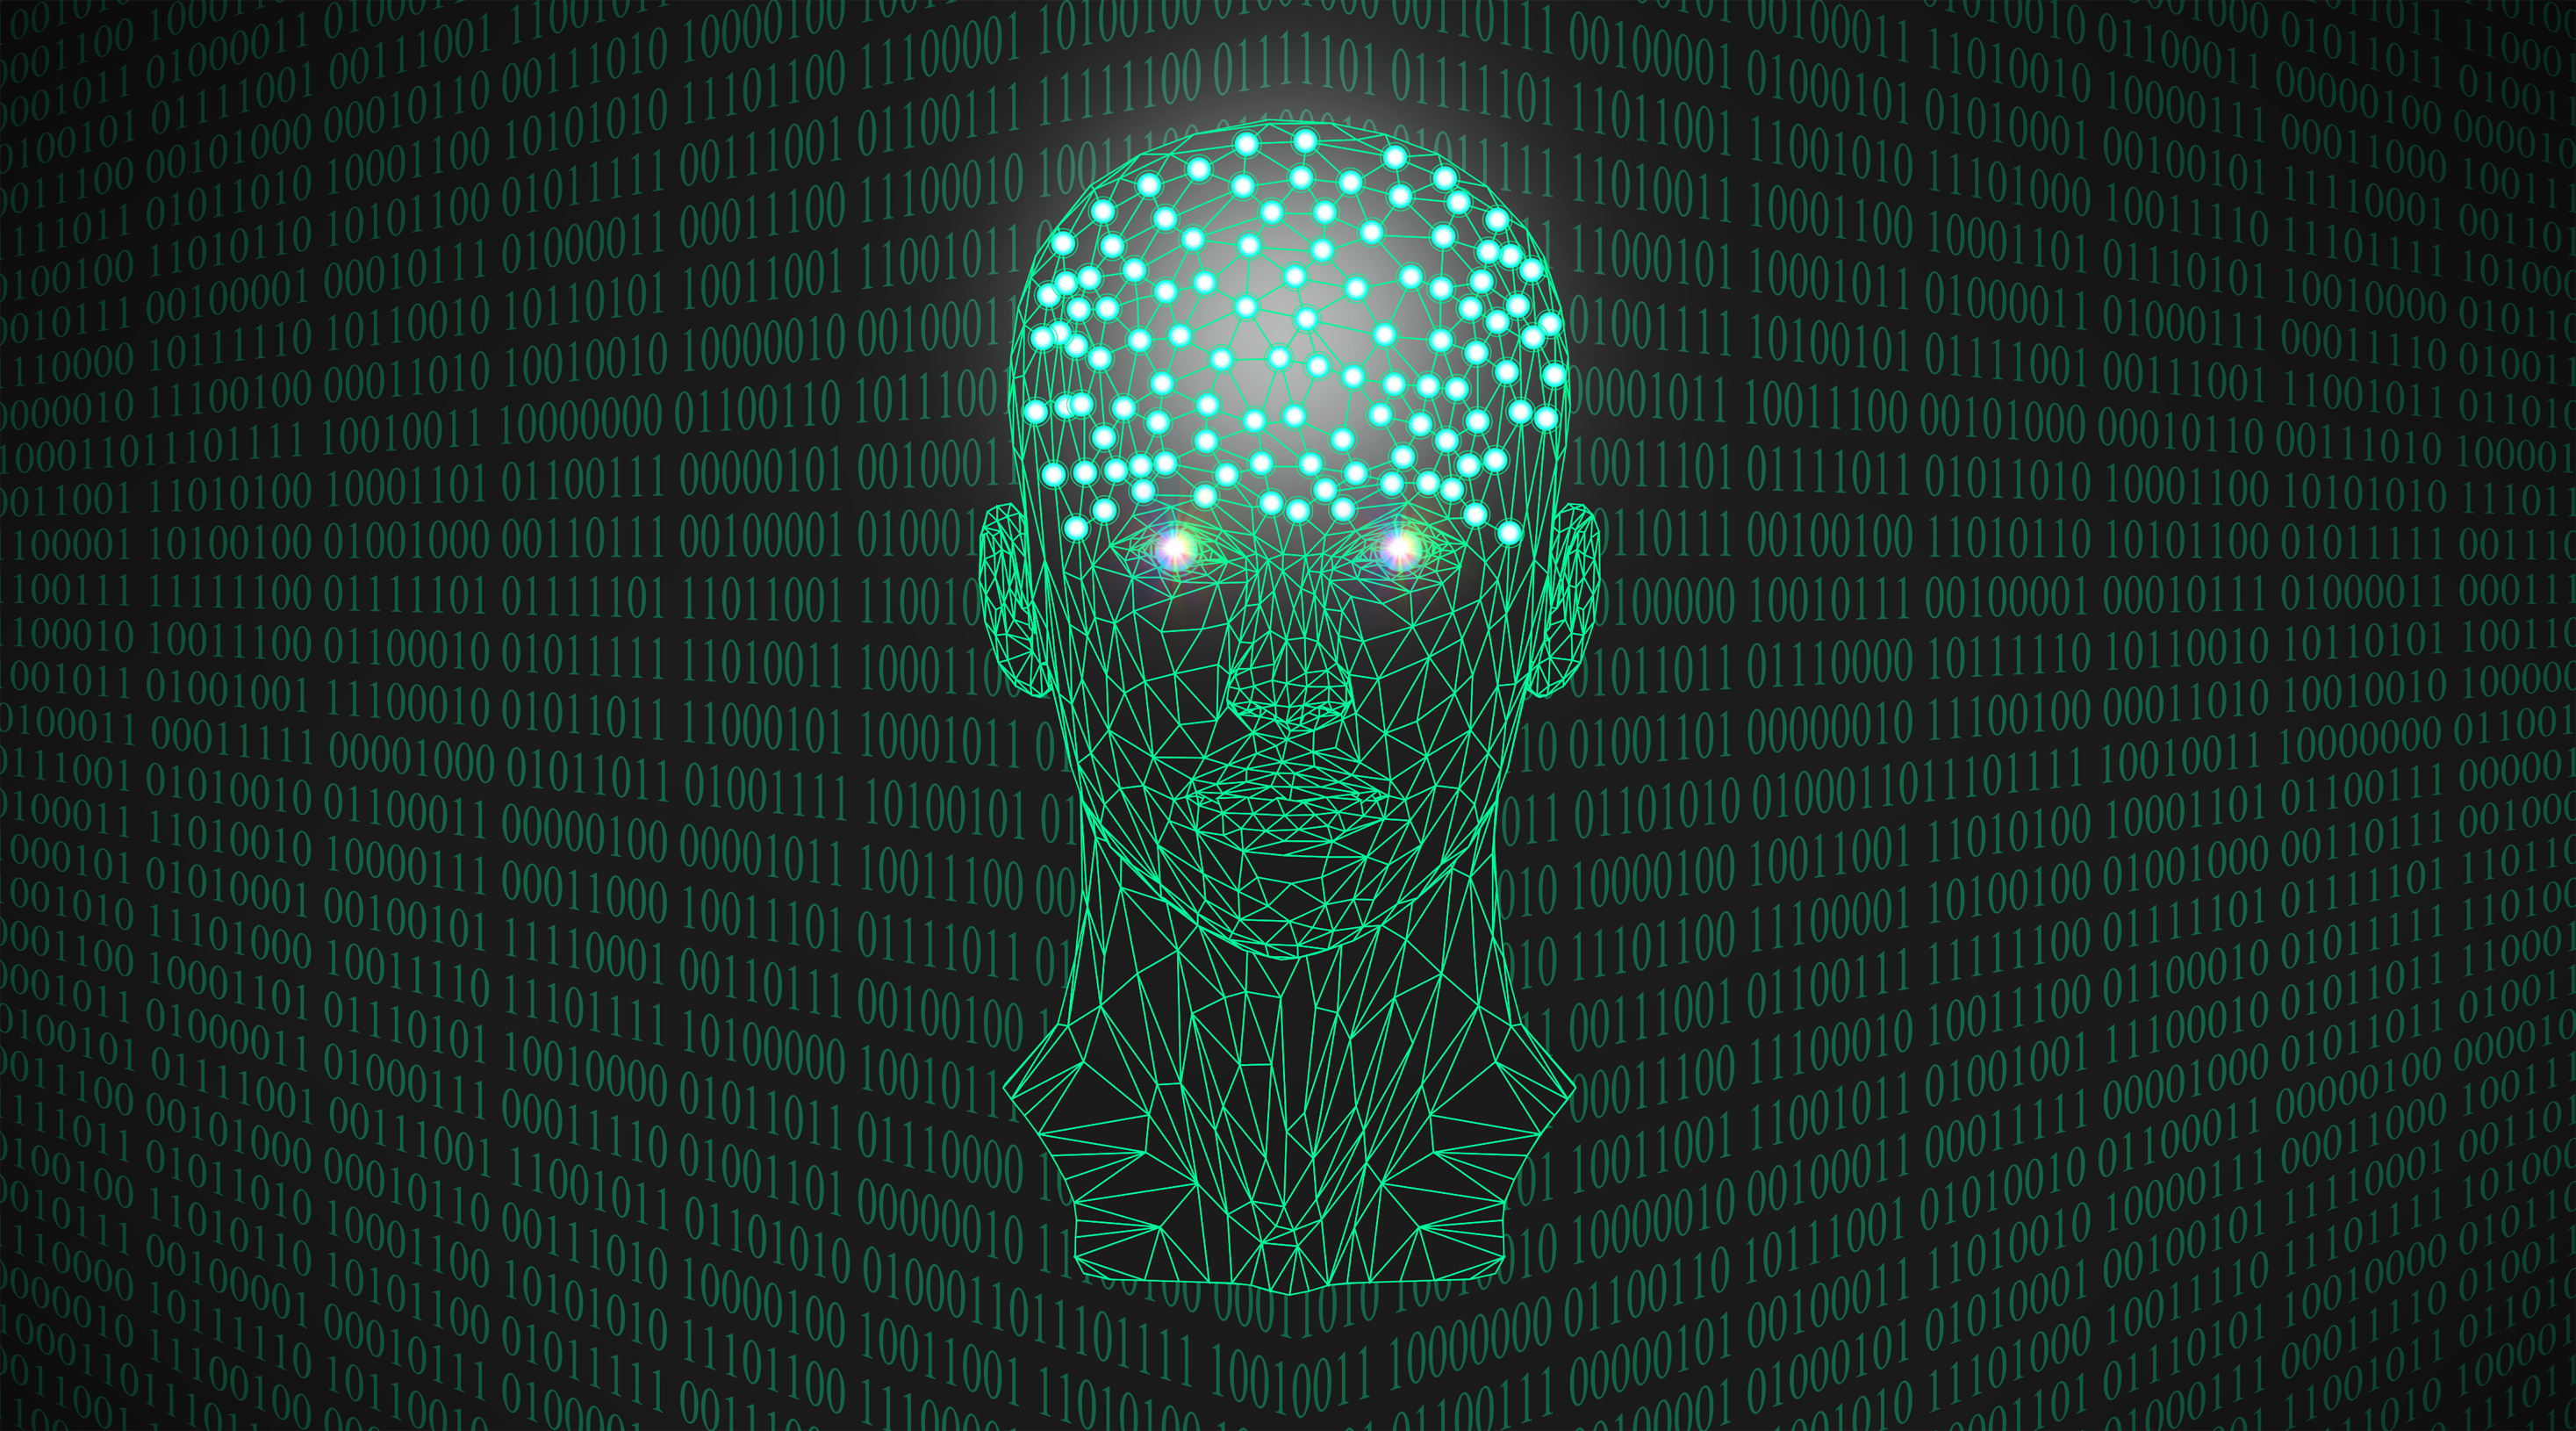 Concept art of a humanoid head made out of glowing green binary numbers on a black background.